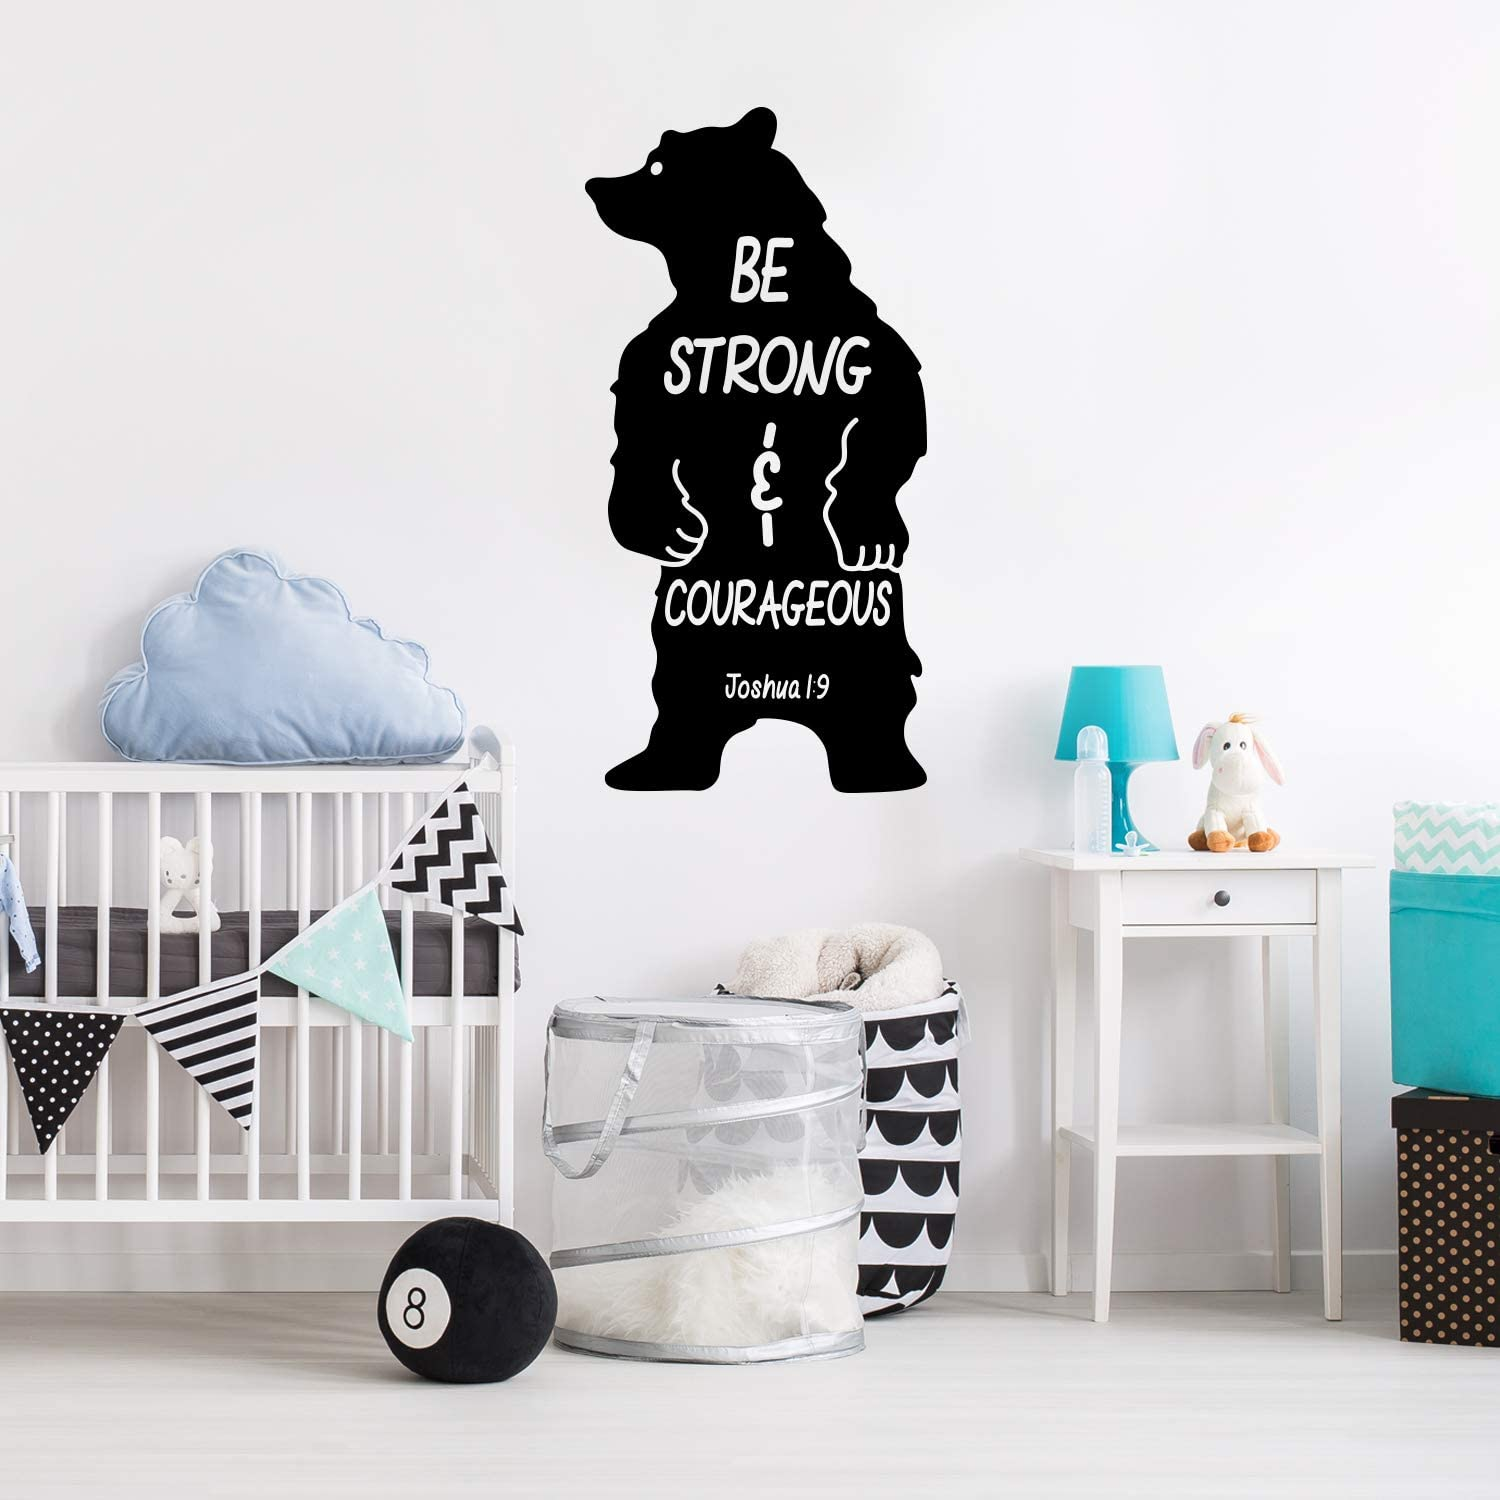 "Vinyl Wall Art Decal - Be Strong and Courageous - Joshua 1:9-40"" x 22"" - Verse Religious Christian Faith Cool Bear Shape Kids Toddlers Nursery Playroom Daycare School Classroom Decor"